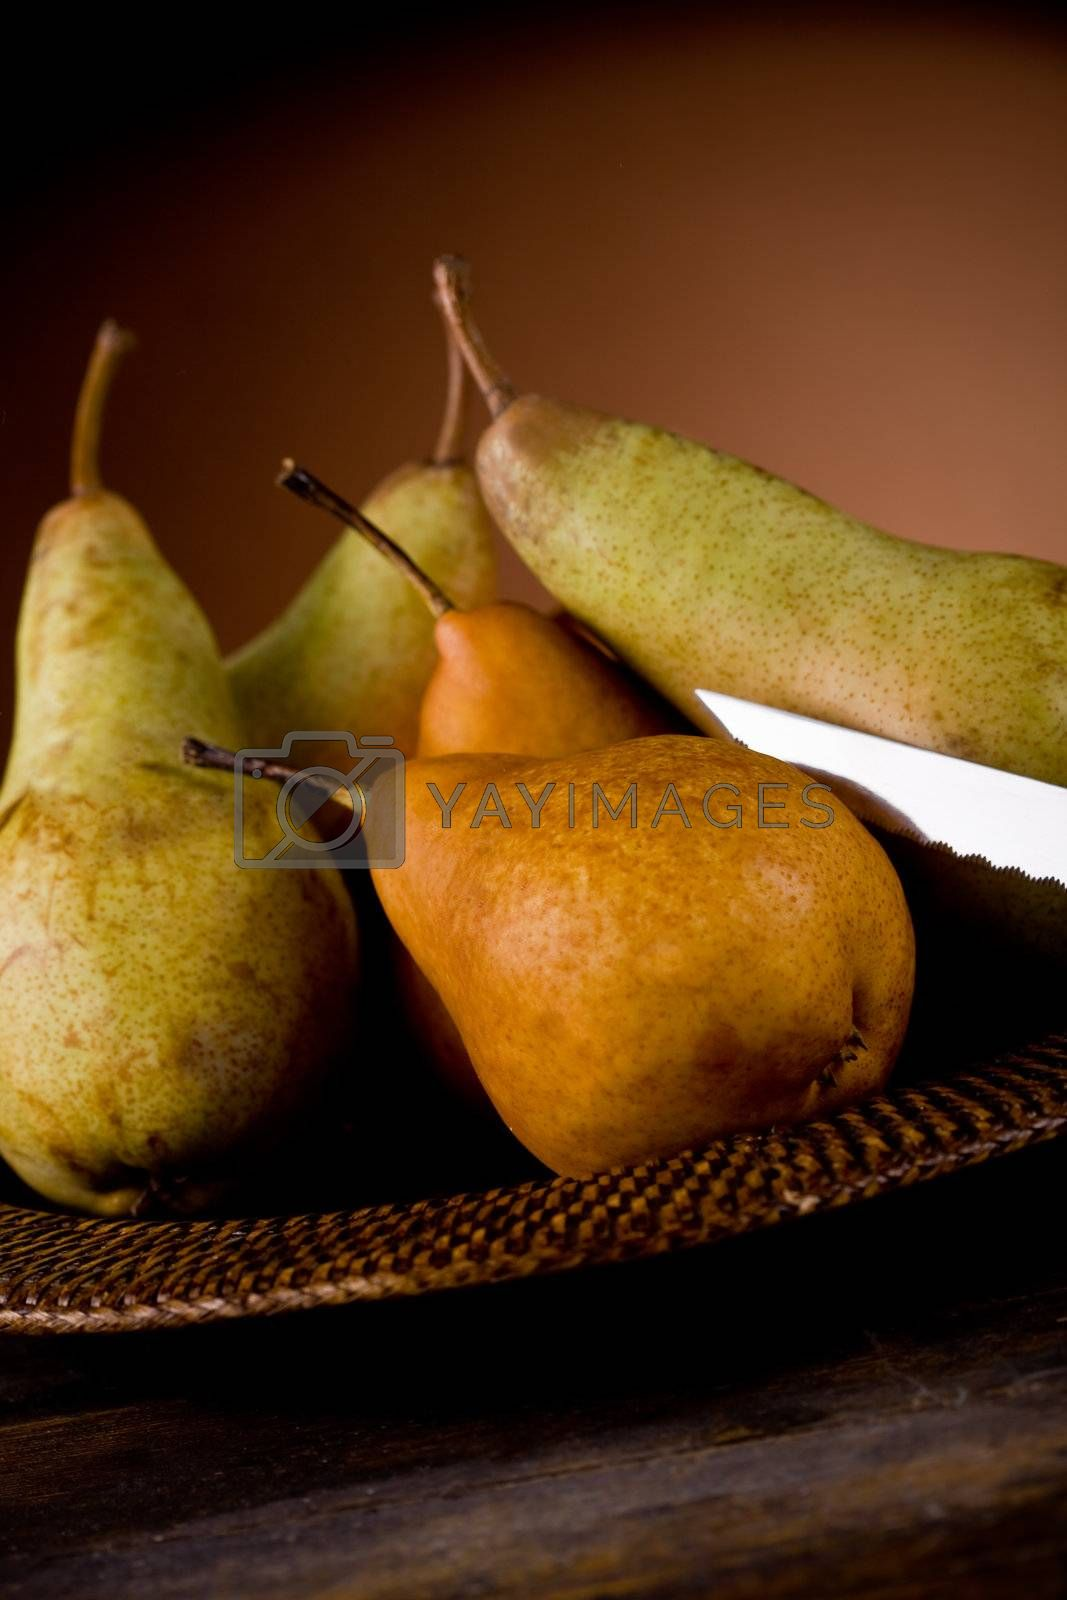 photo of pears on an old plate in poor art style